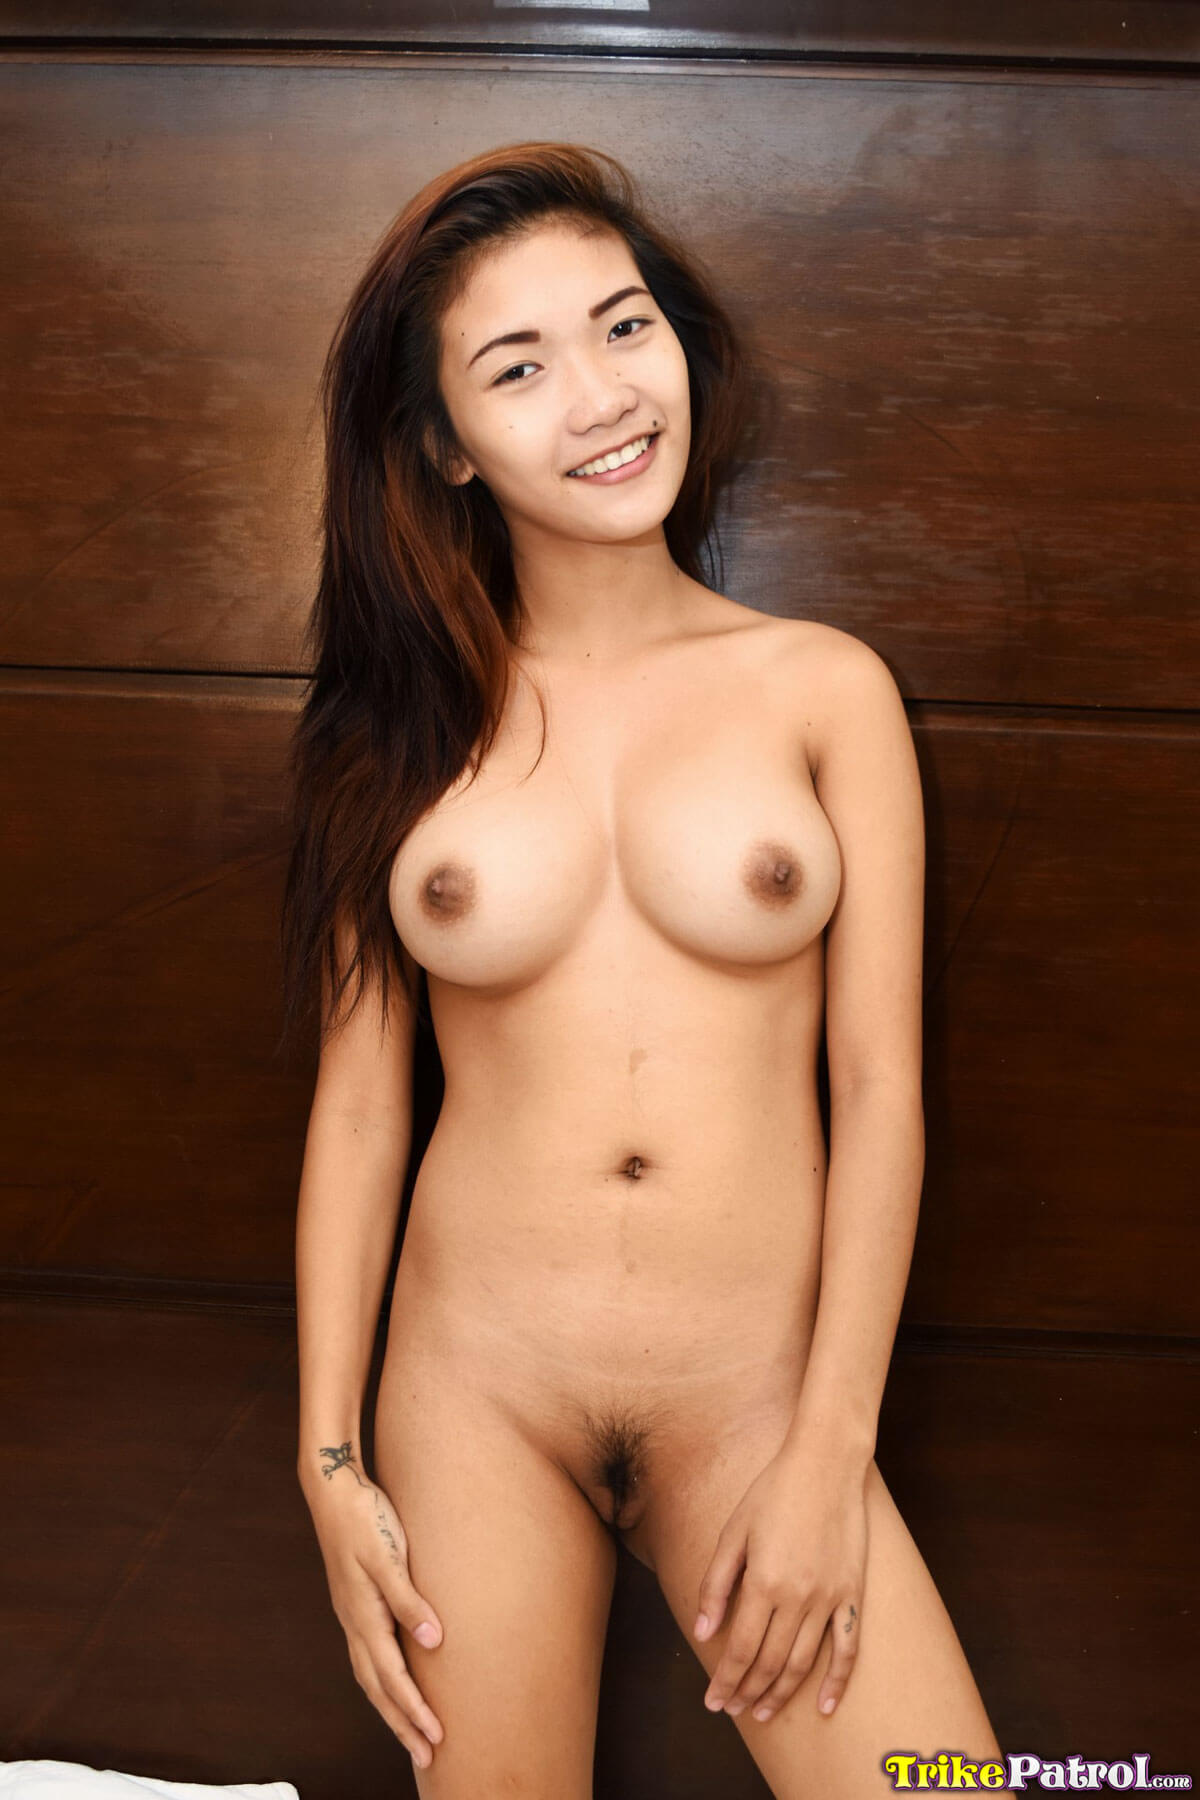 Teen Asian Nude Video